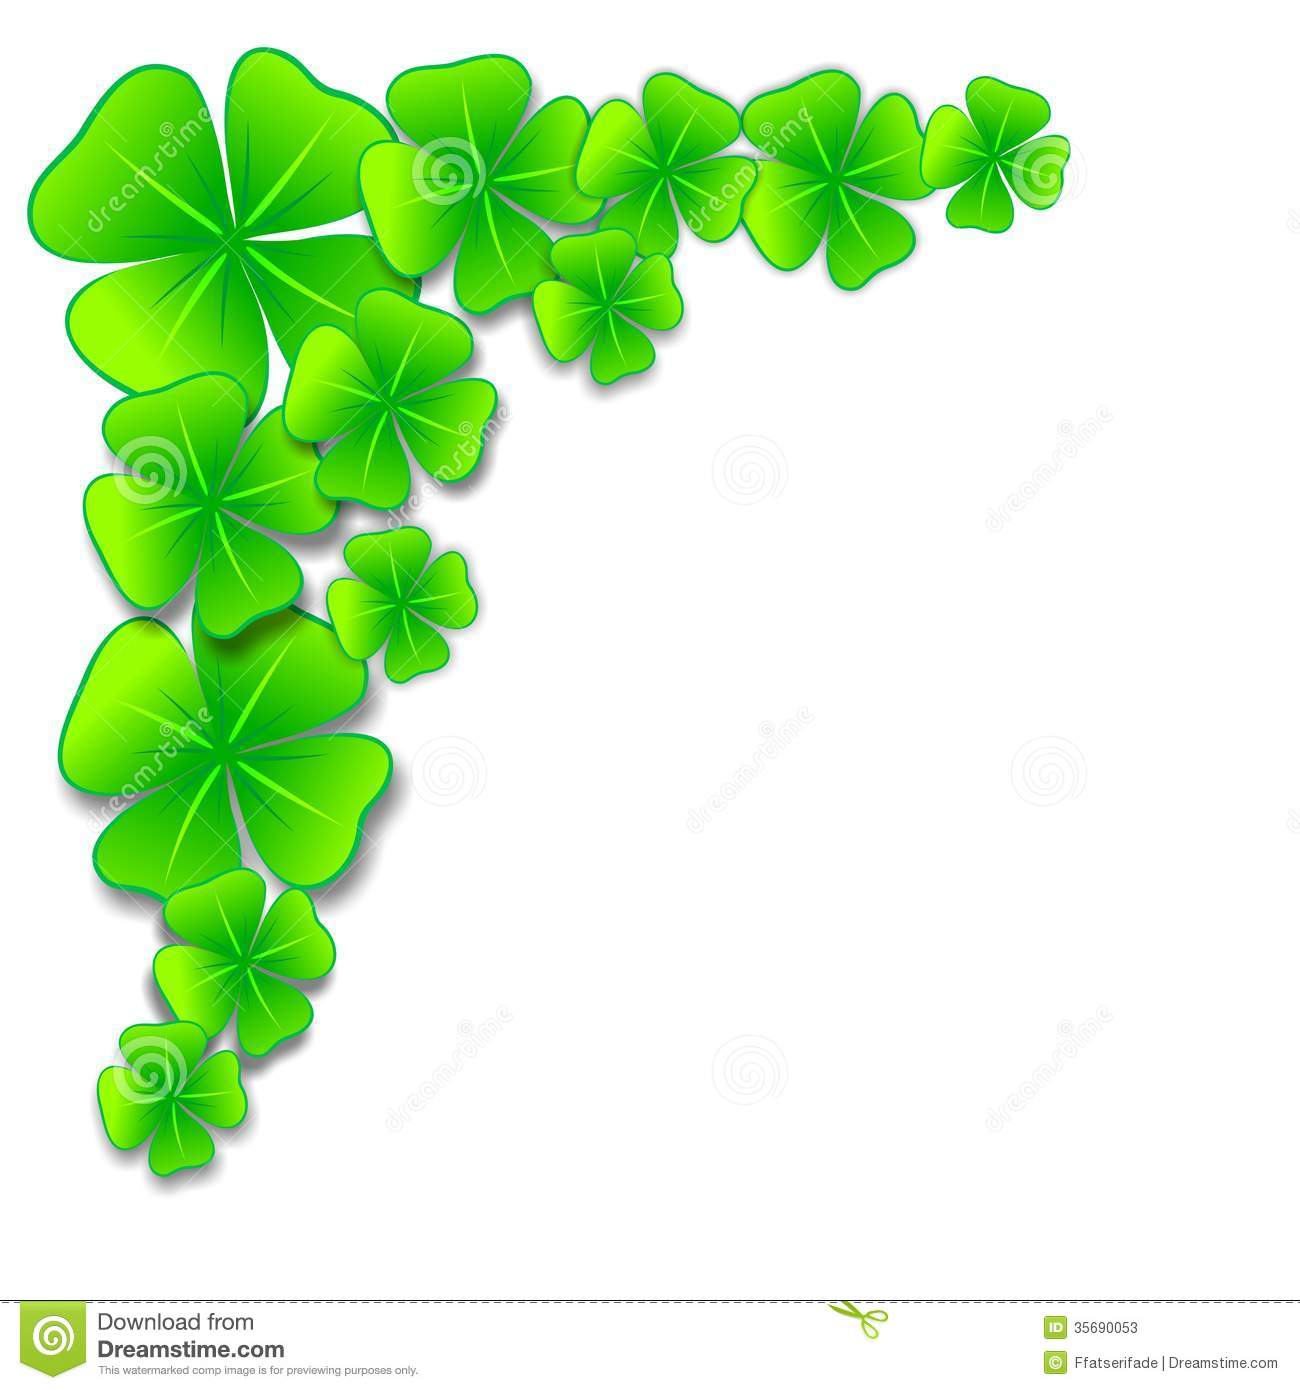 Decorative border with four-leaf clovers as luck charm.